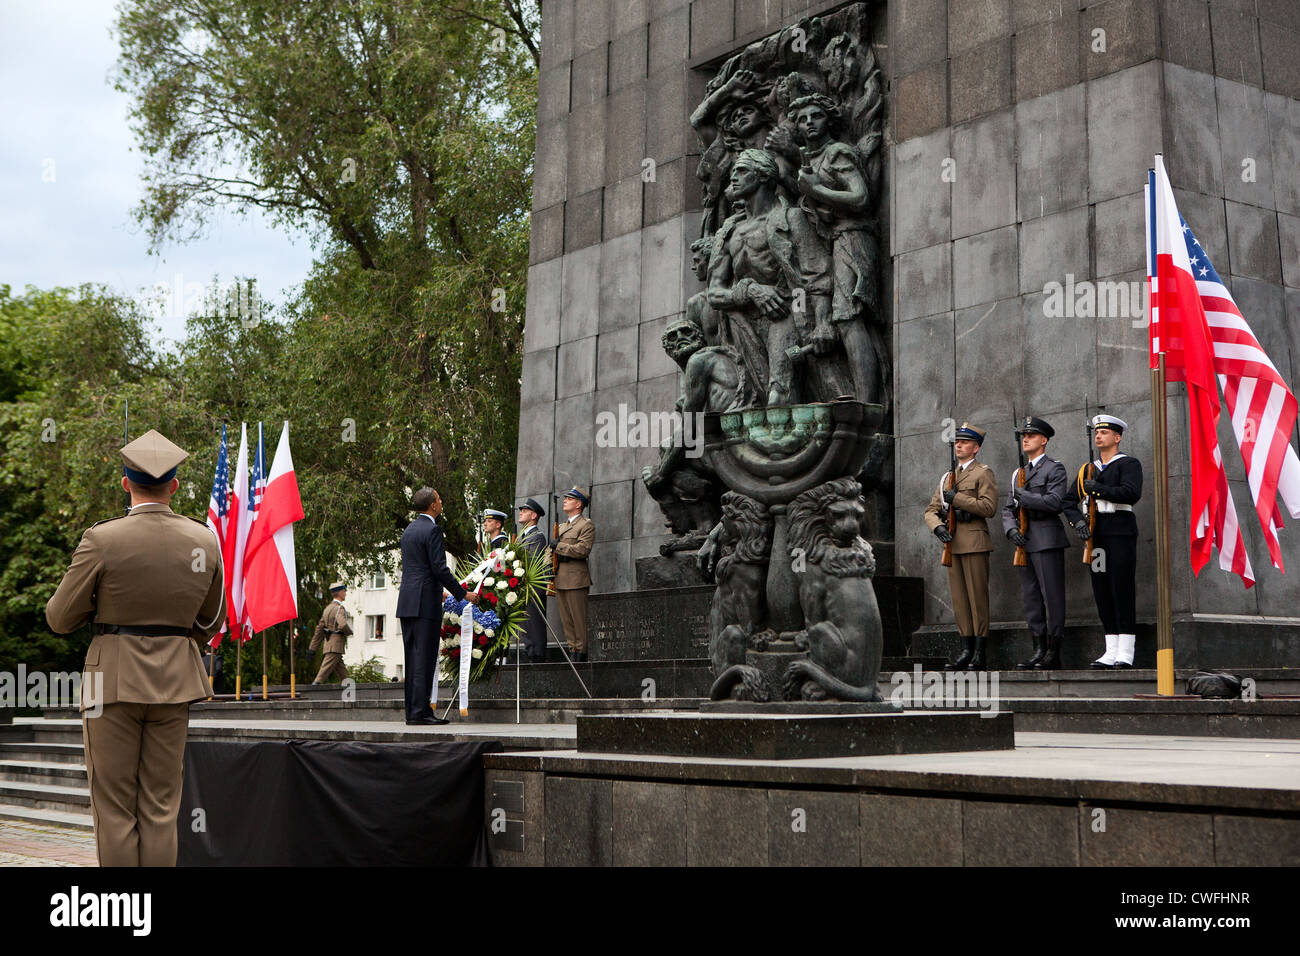 President Barack Obama lays a wreath at the Warsaw Ghetto Memorial in Warsaw, Poland, May 27, 2011. (Official White - Stock Image